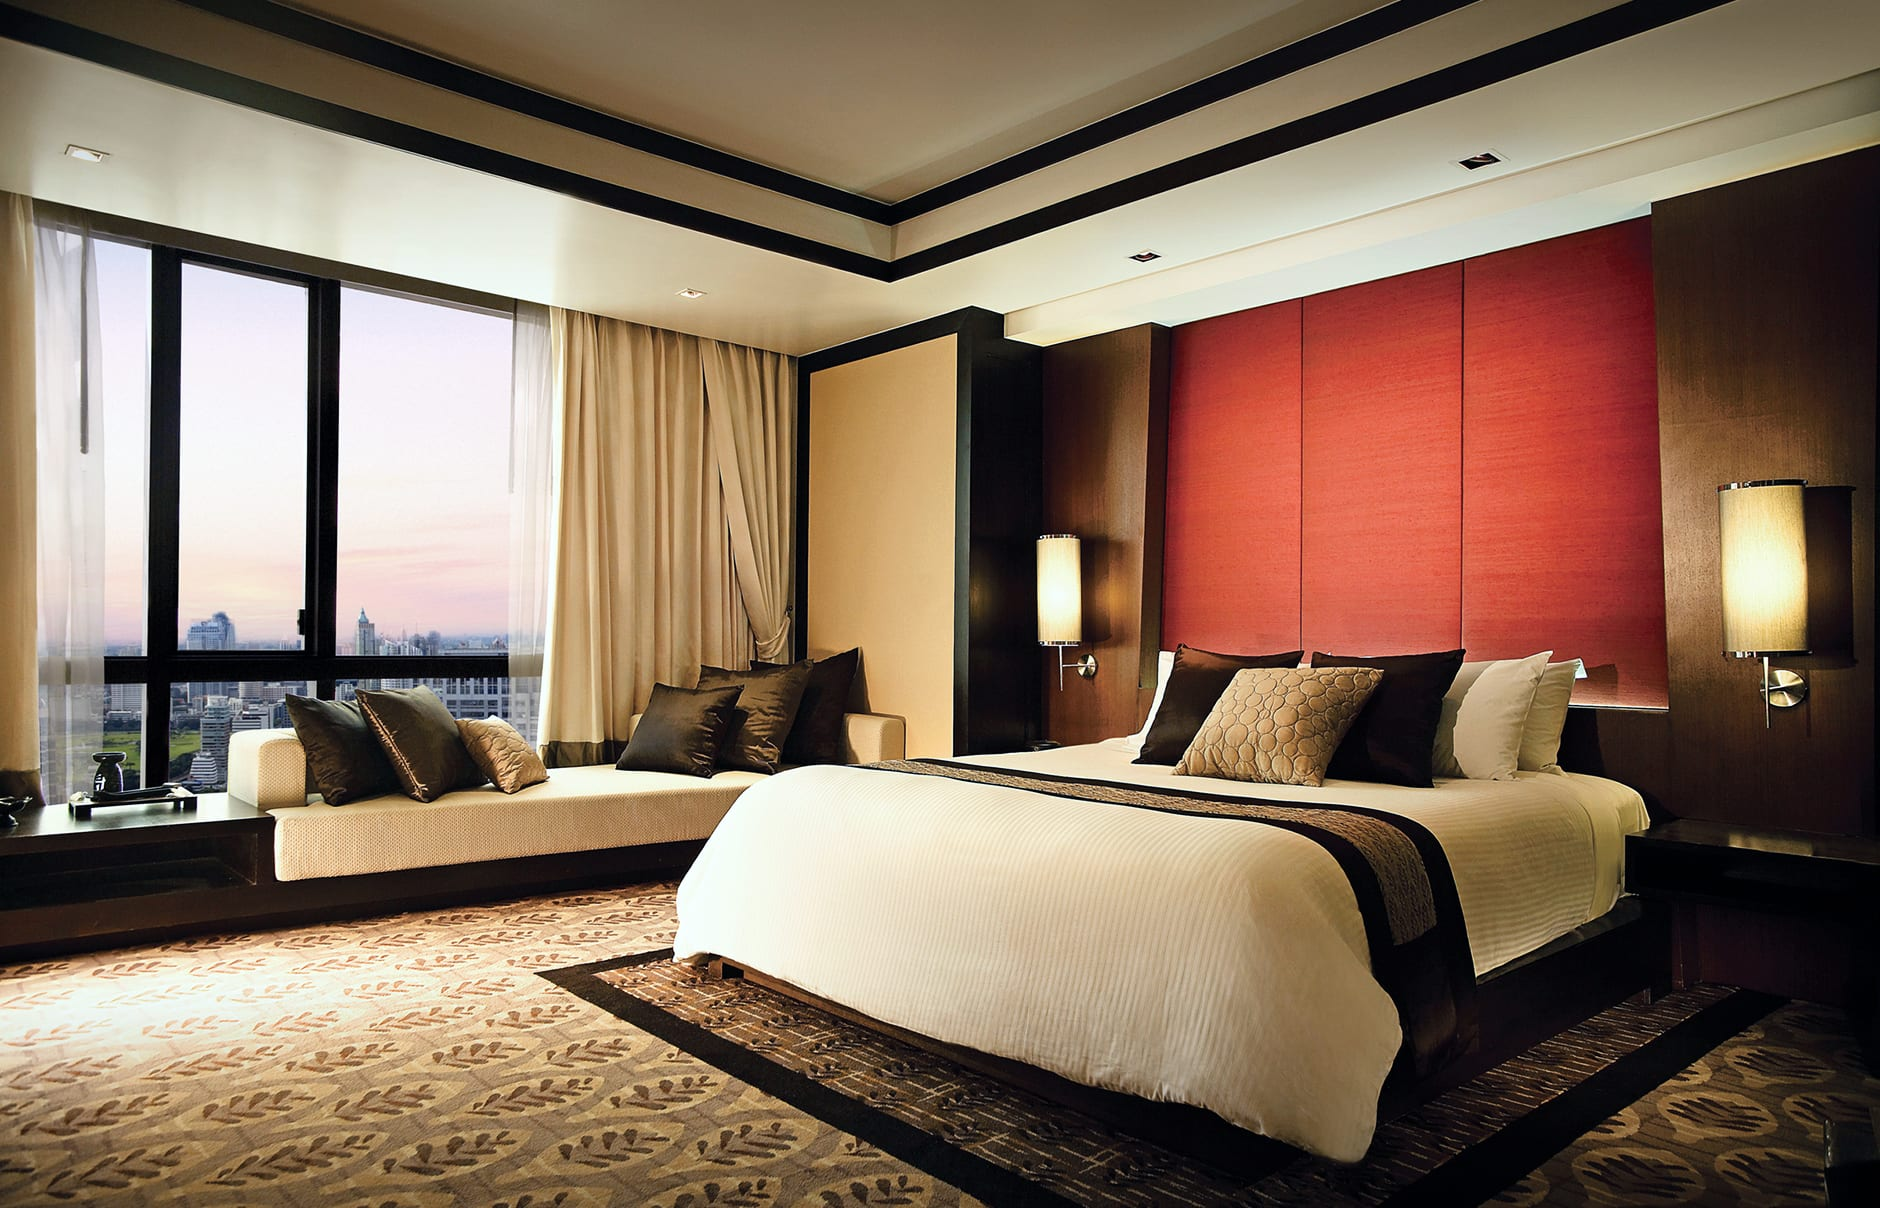 Club room. Banyan Tree Bangkok. © Banyan Tree Hotels & Resorts